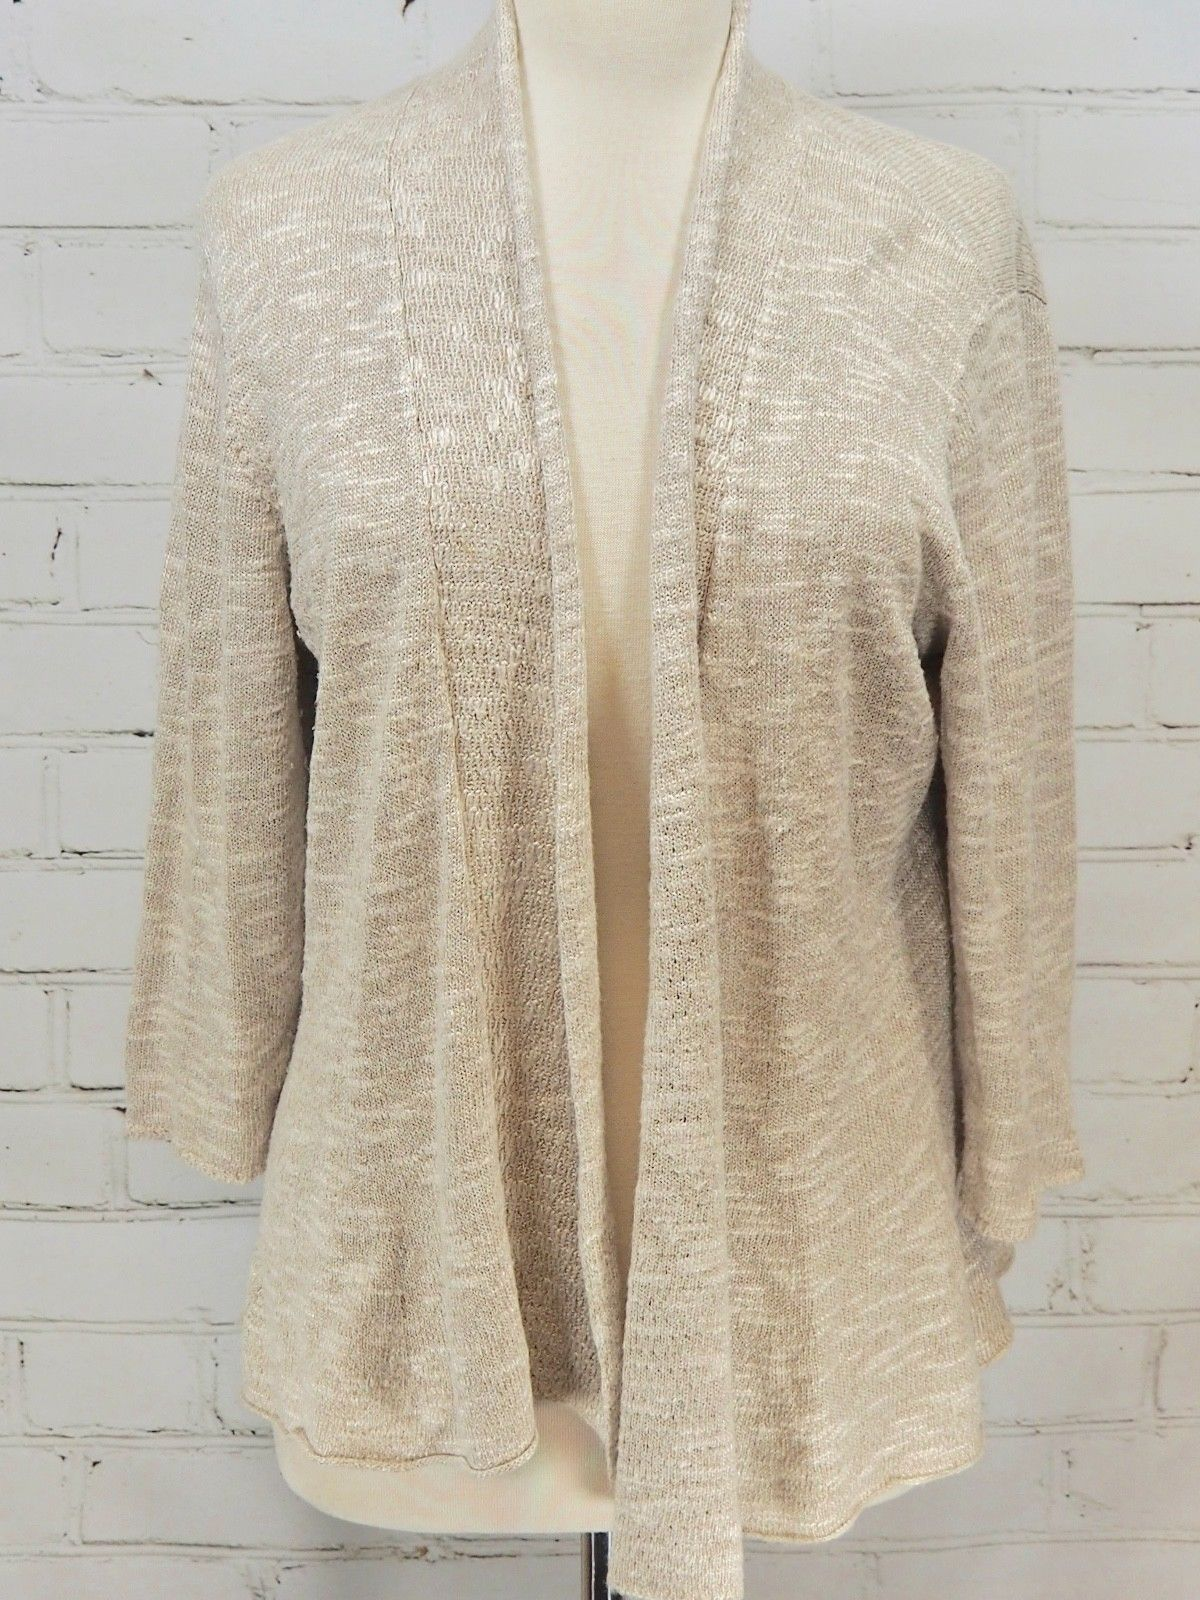 382363b5198 57. 57. Previous. Eileen Fisher Open Wrap Sweater Linen Blend 3 4 Sleeve  Layering Size Large Ivory